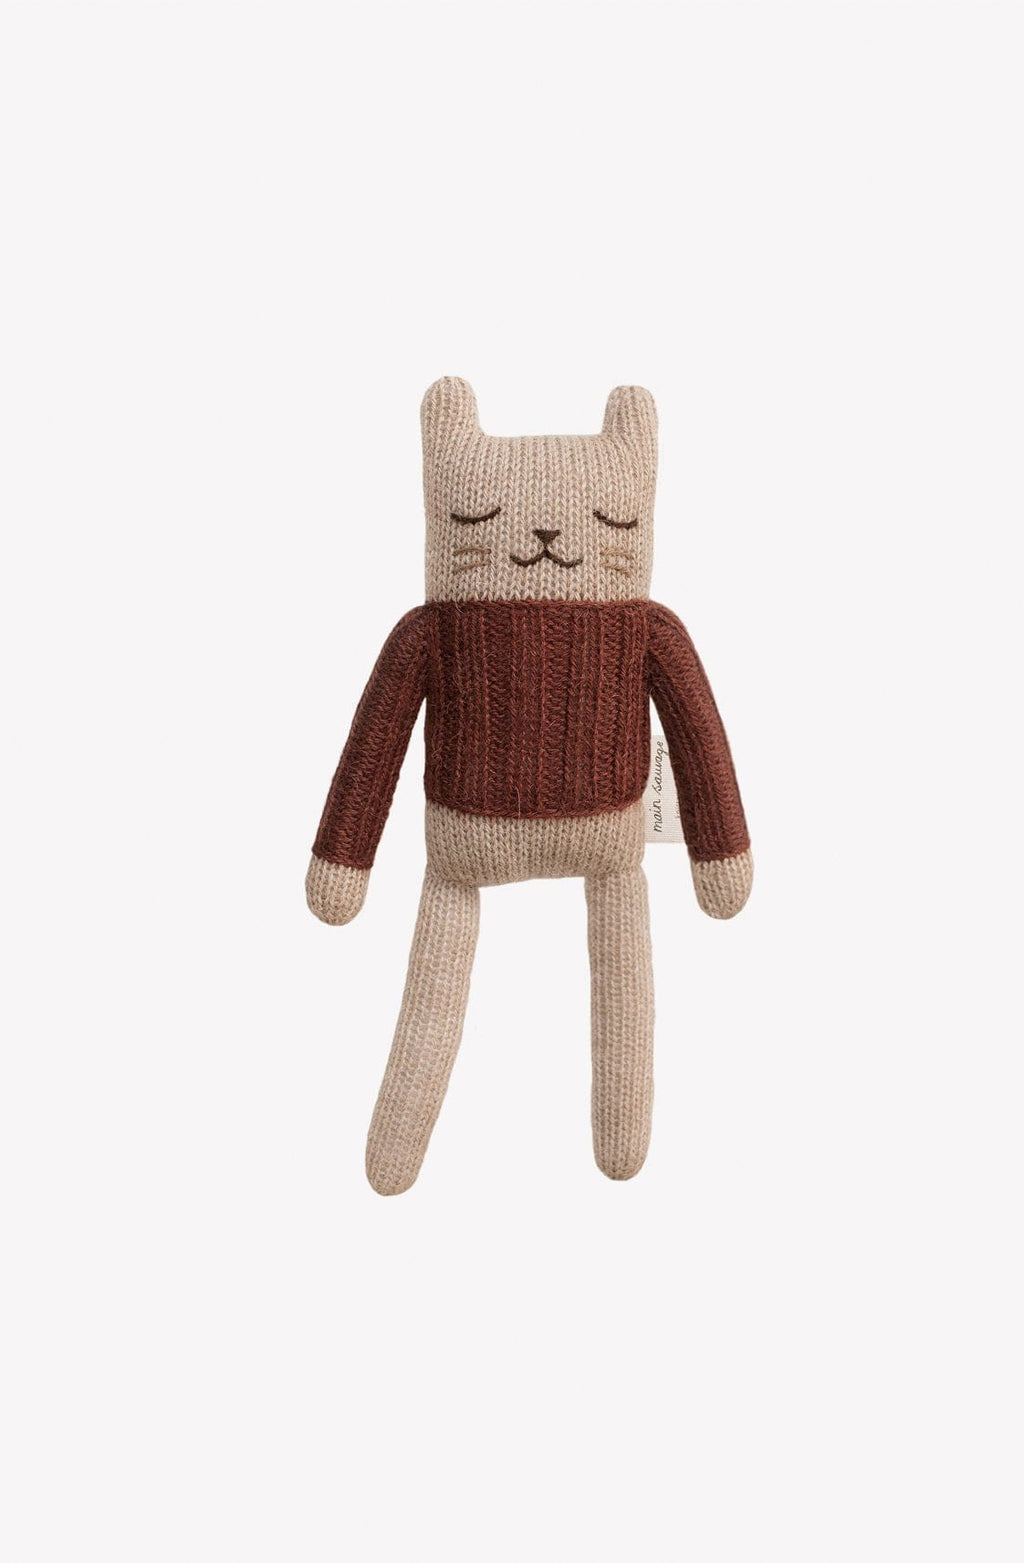 Main Sauvage Kitten soft toy, sienna sweater - Hello Little Birdie